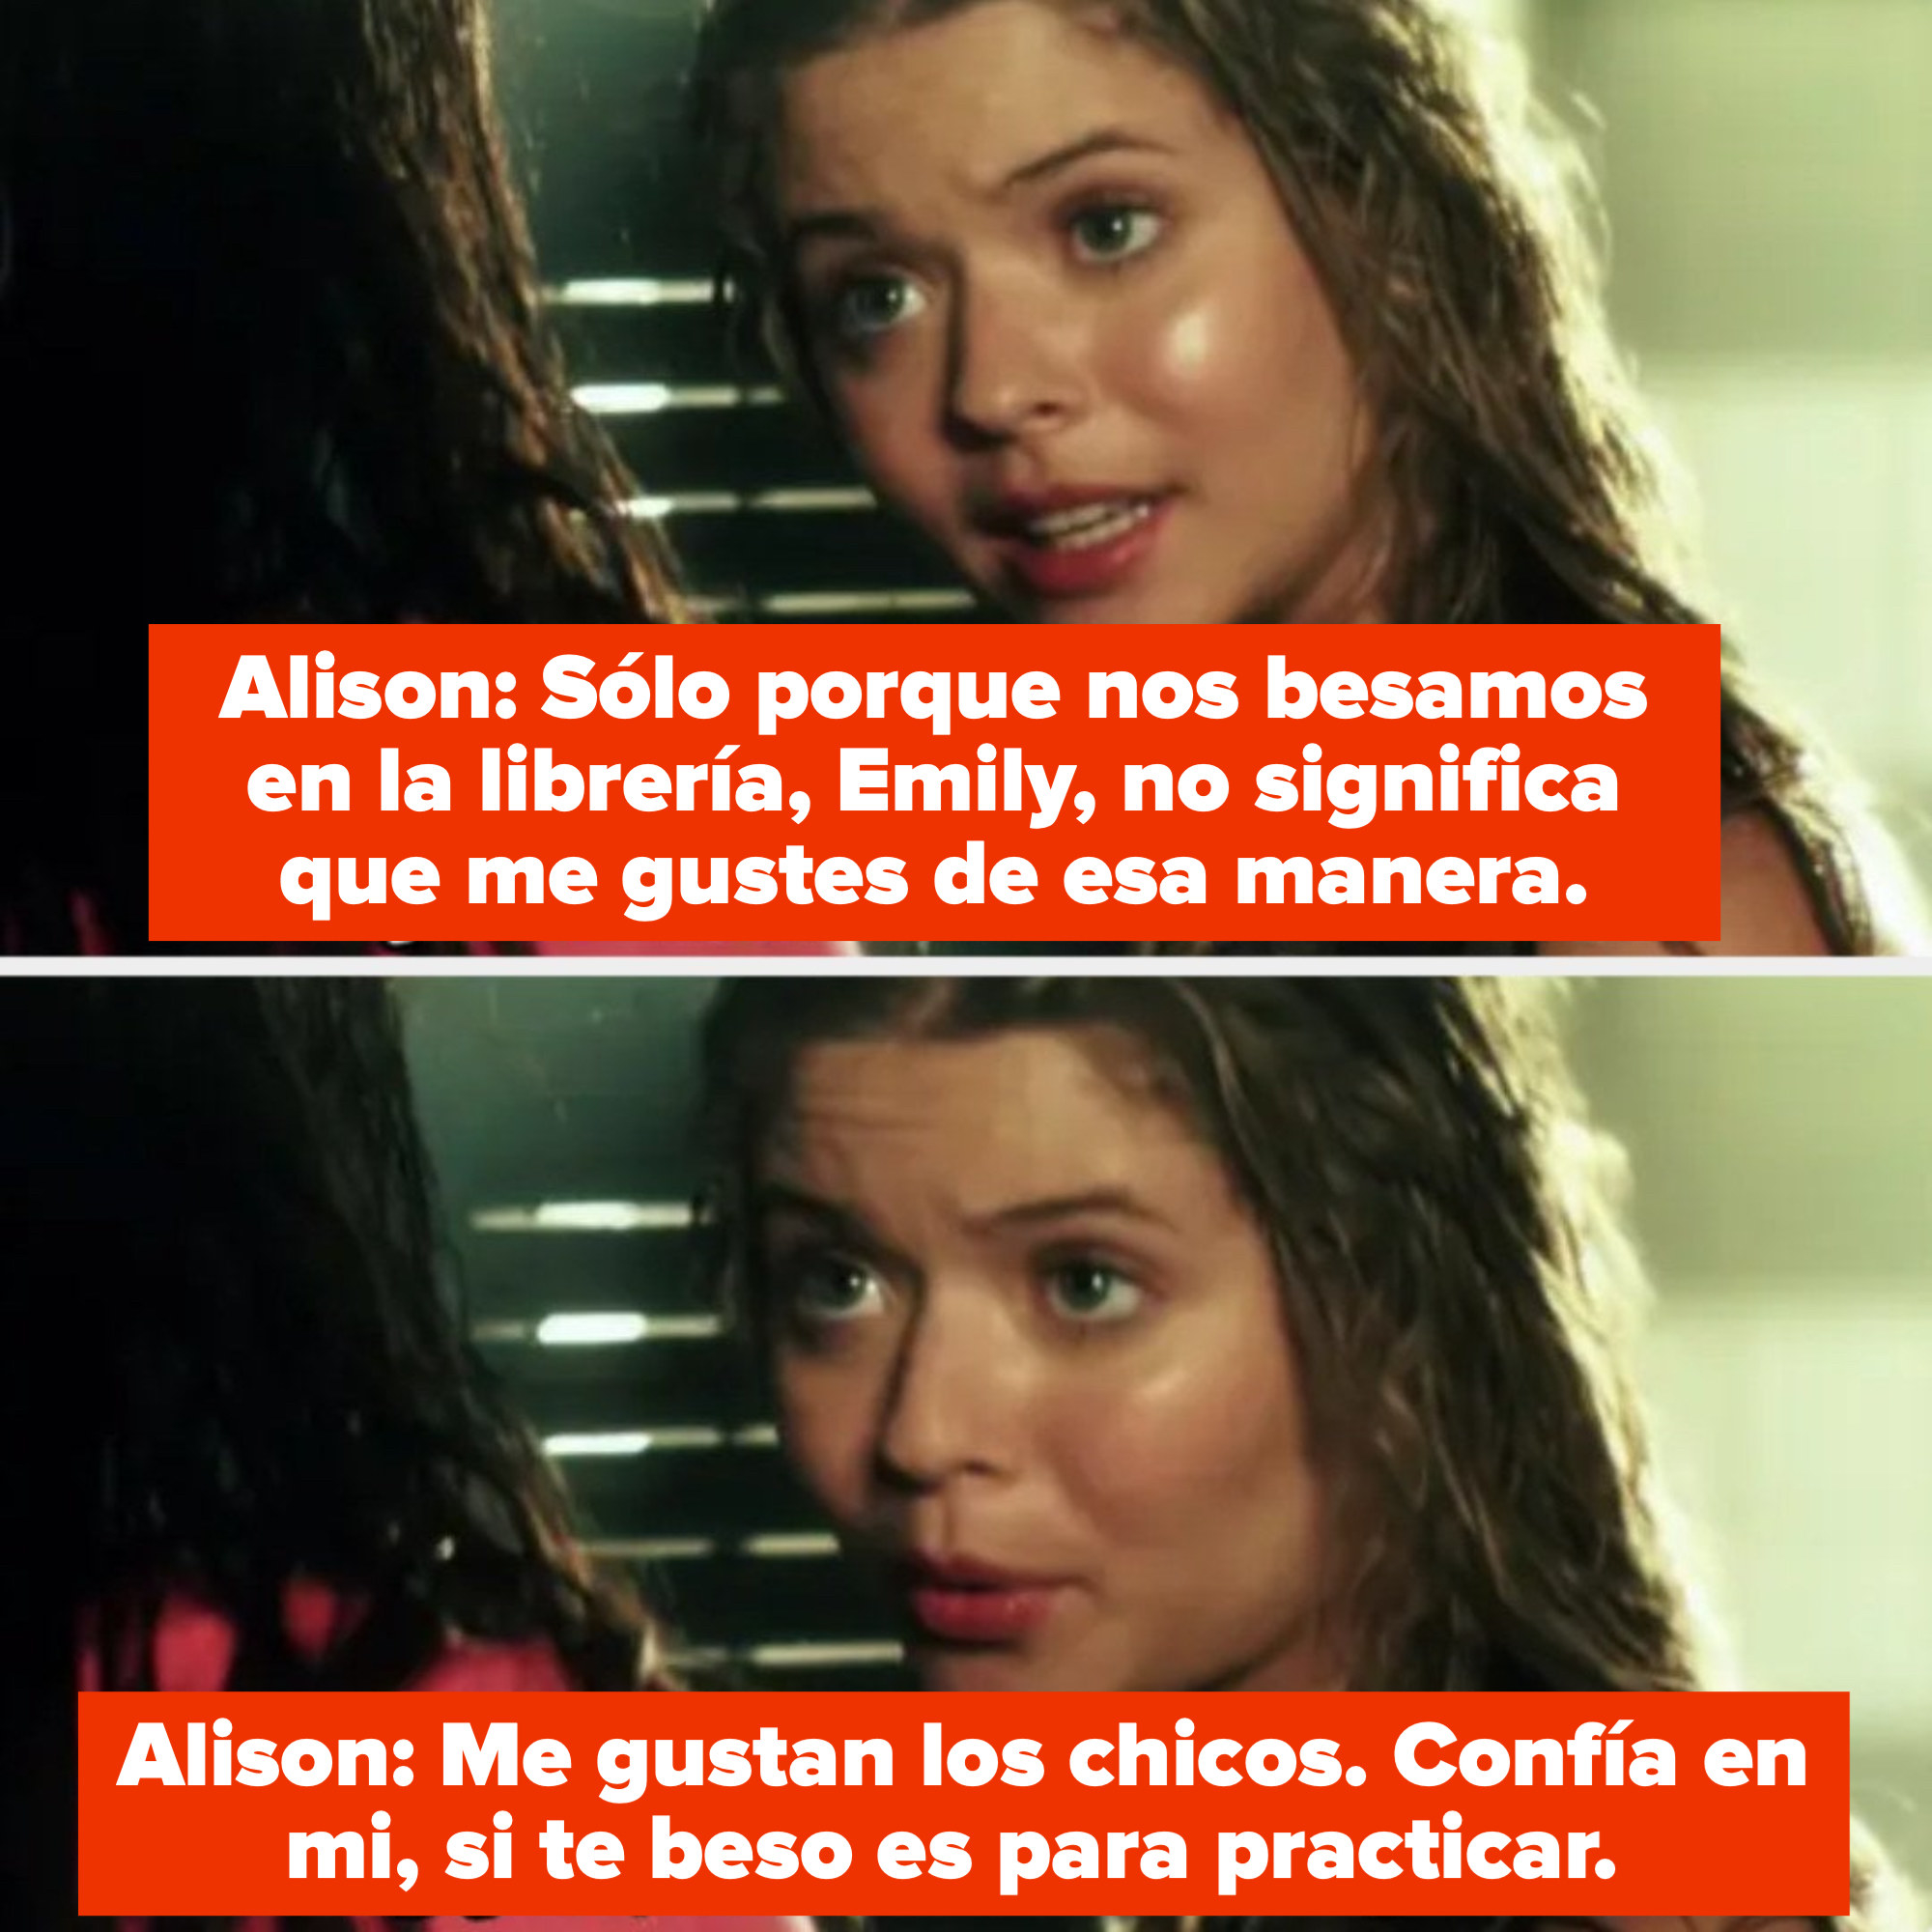 Alison tells Emily she's only kissing her for practice